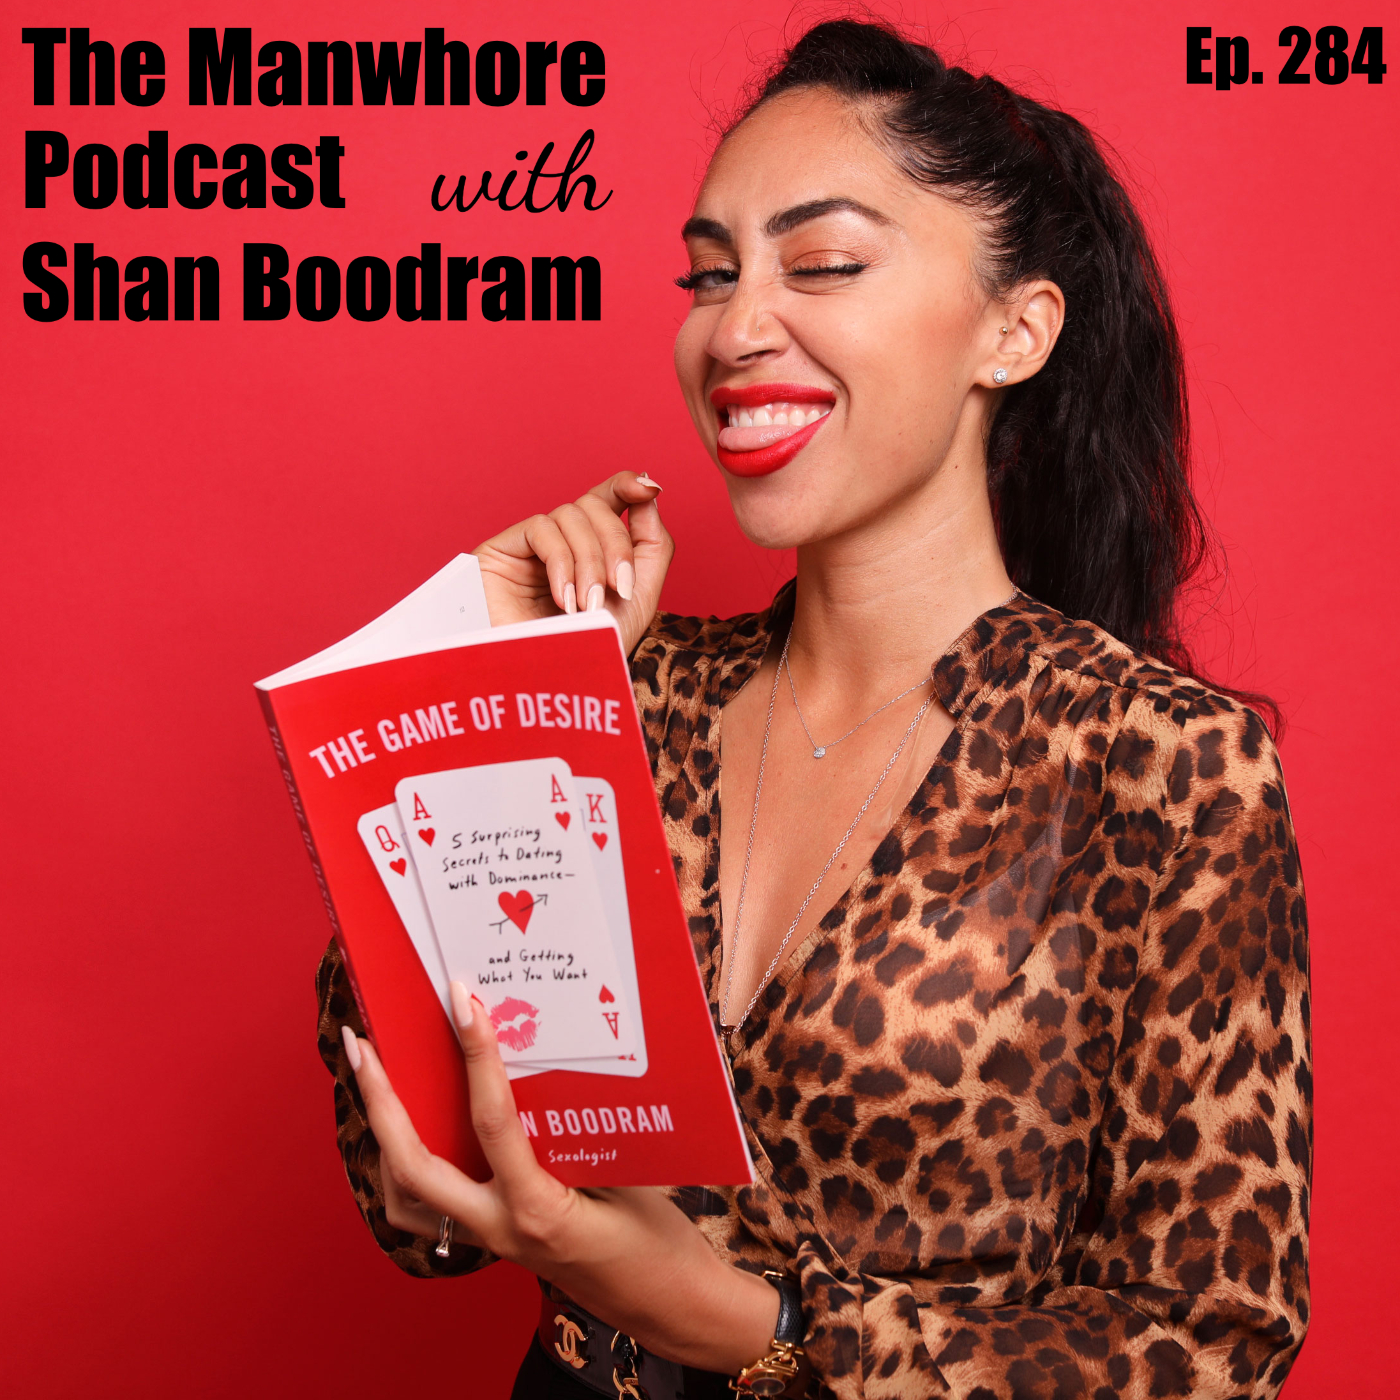 The Manwhore Podcast: A Sex-Positive Quest - Ep. 284: Winning the Game of Desire with Shan Boodram